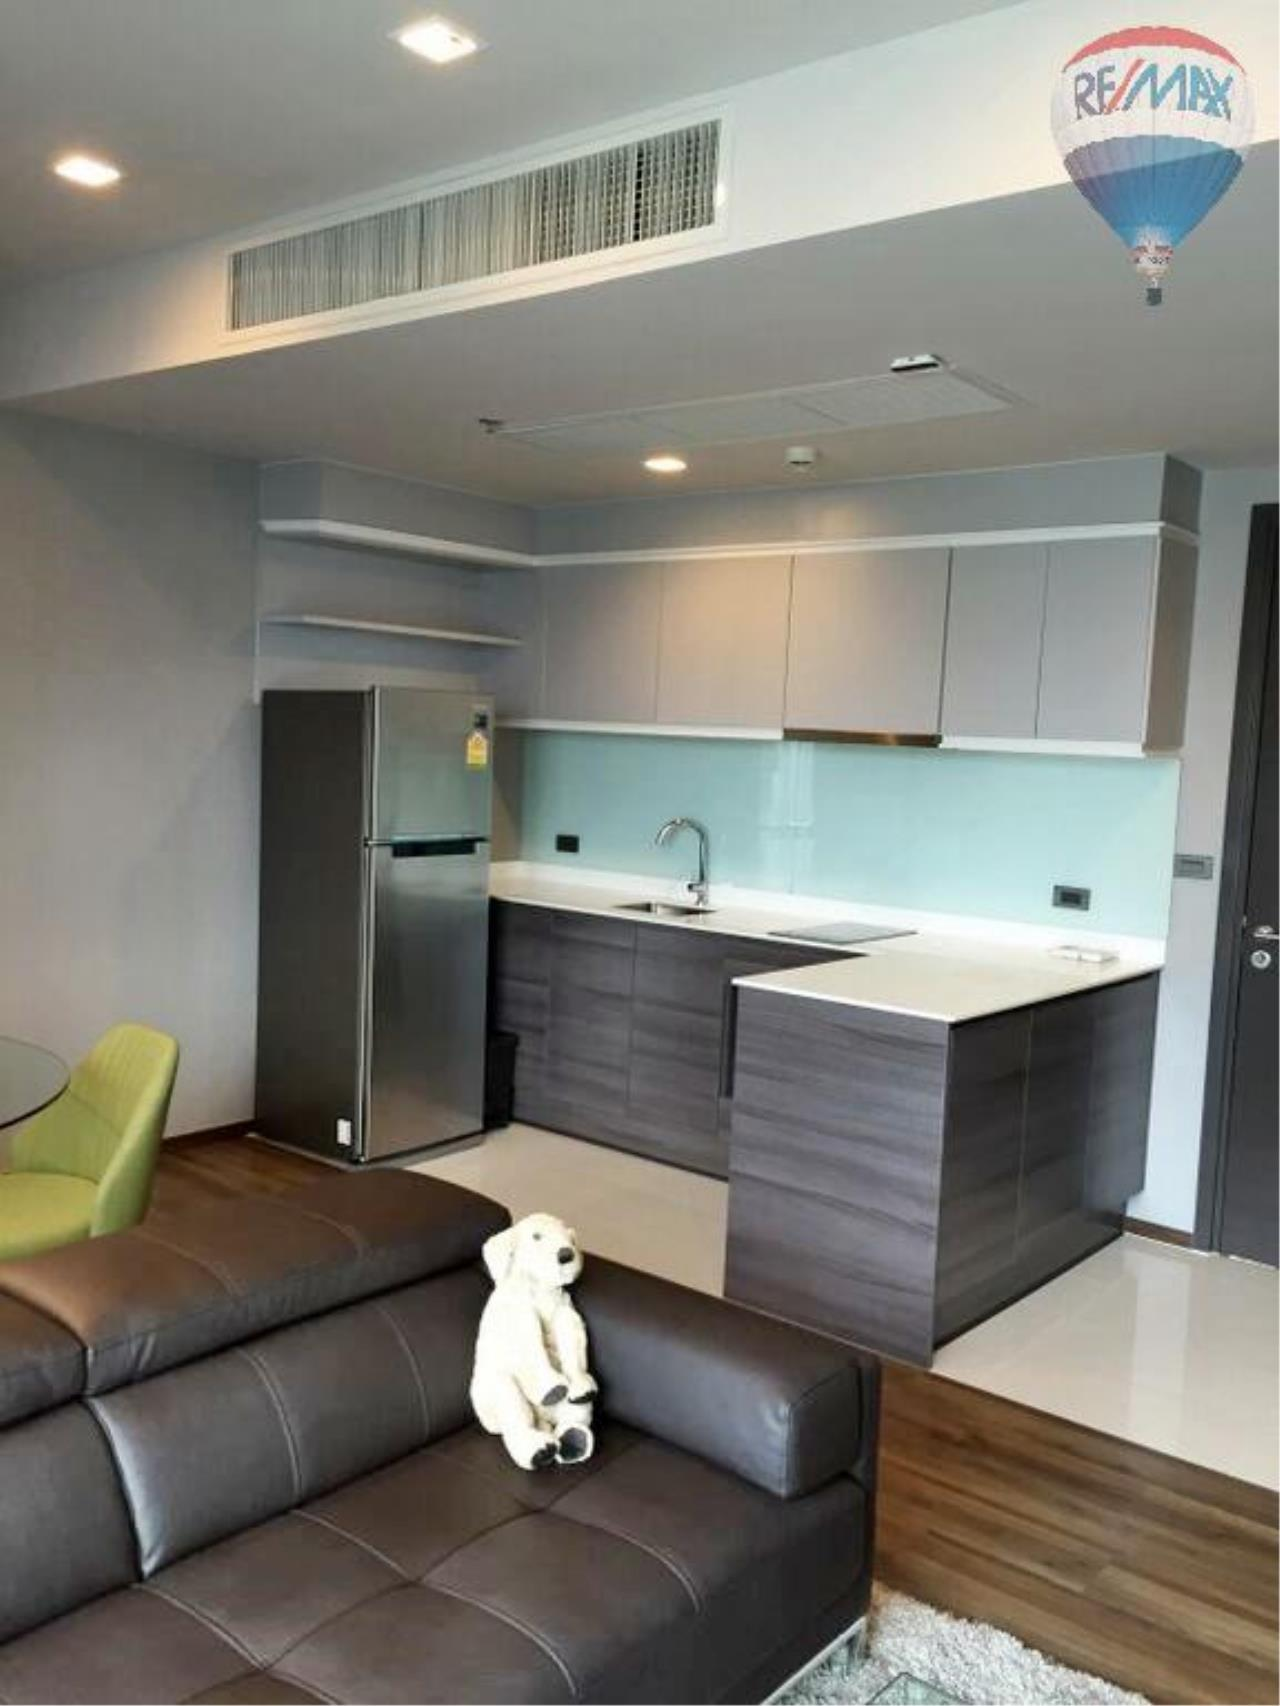 RE/MAX Properties Agency's Condominium for rent at Ekamai 11